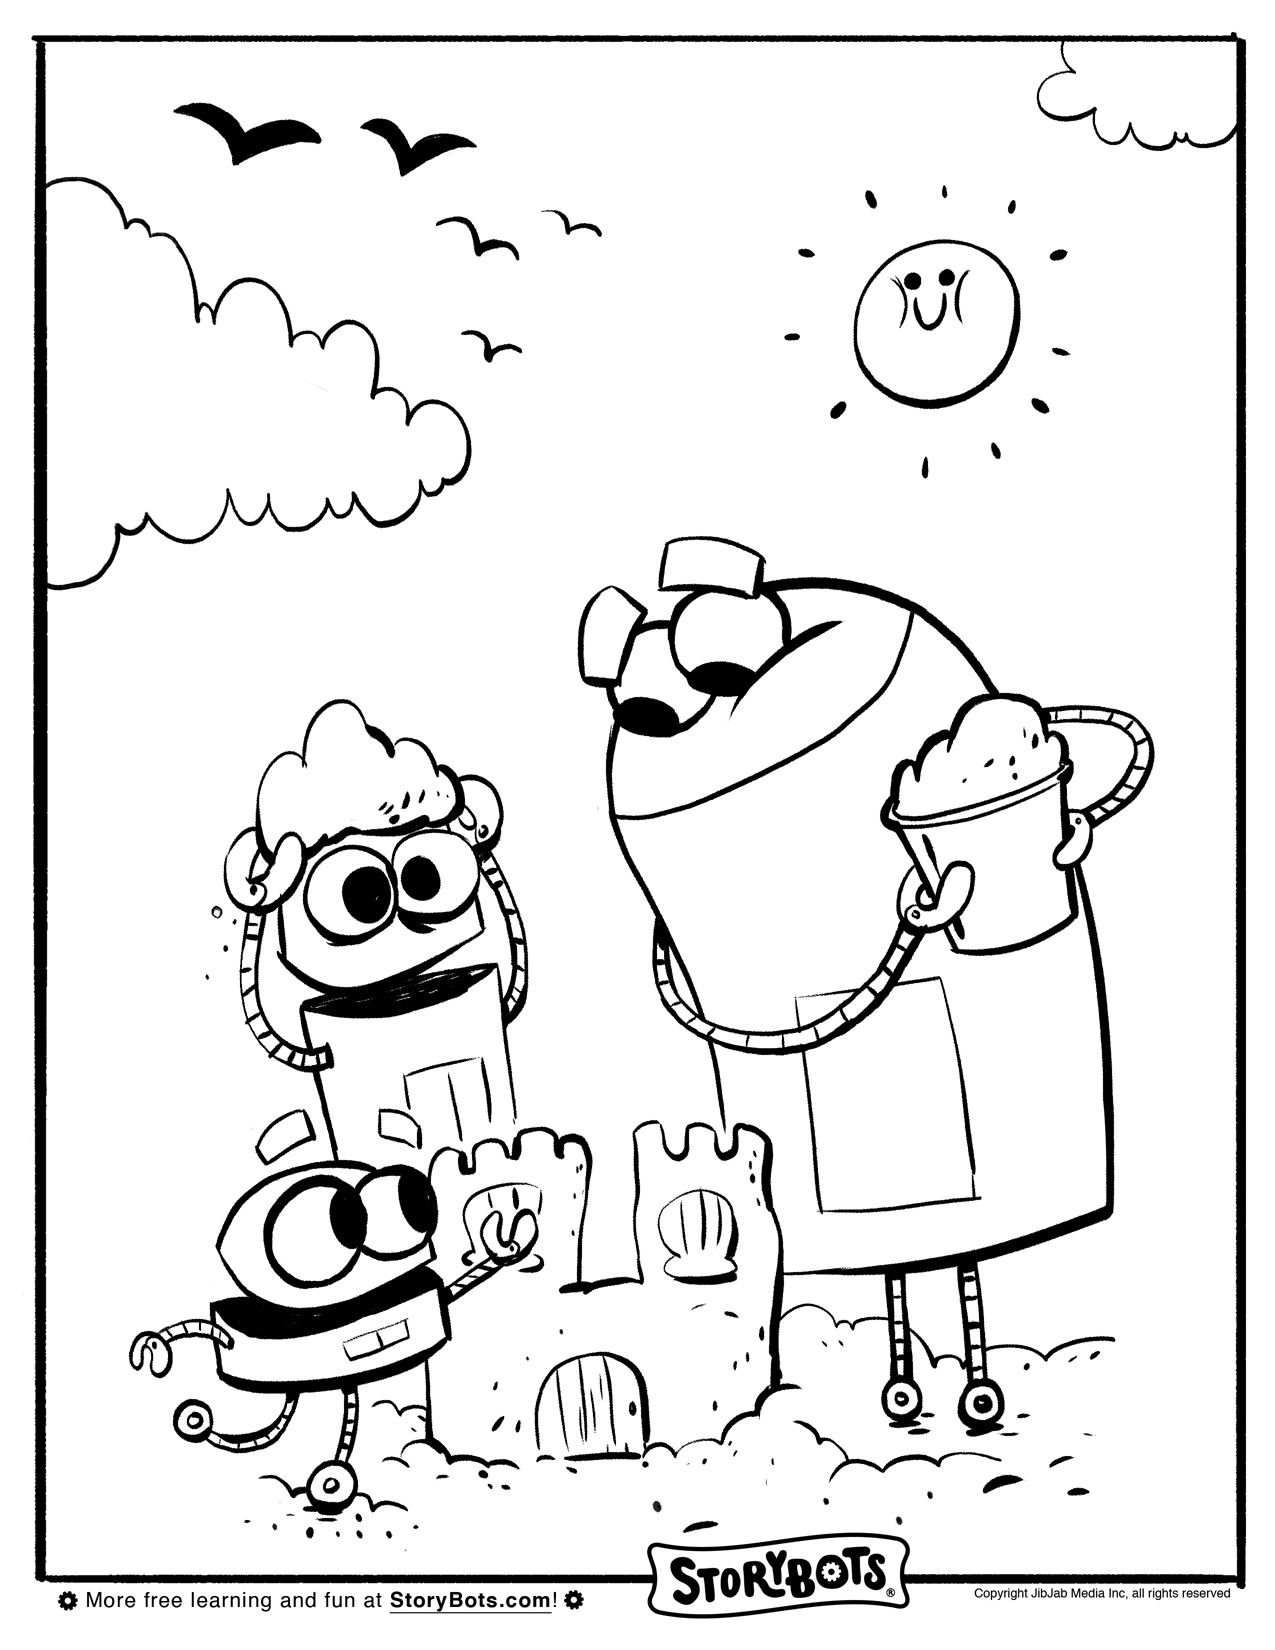 Sand Castle Storybots Coloring Pages